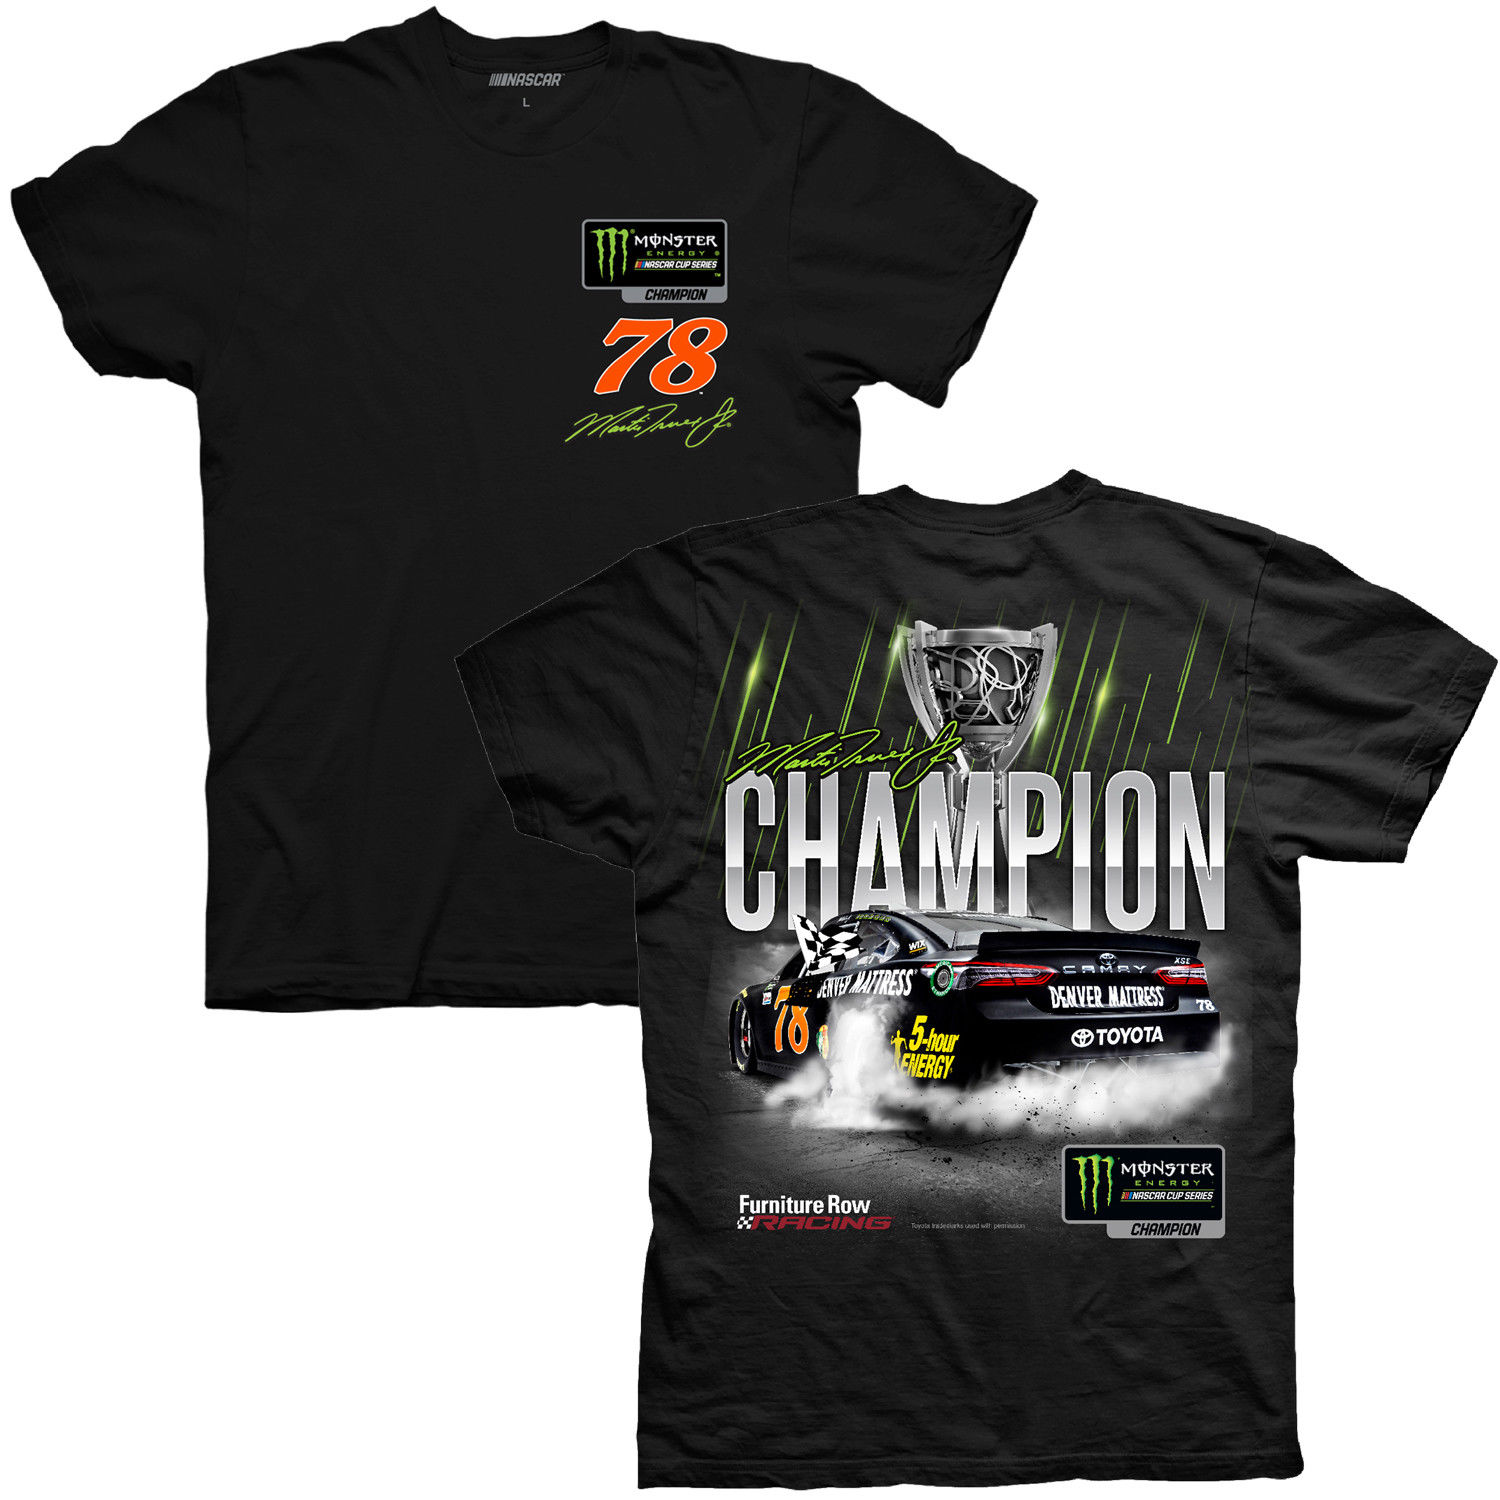 2017 Martin Truex Jr Monster Energy Champion 2 spot black tee